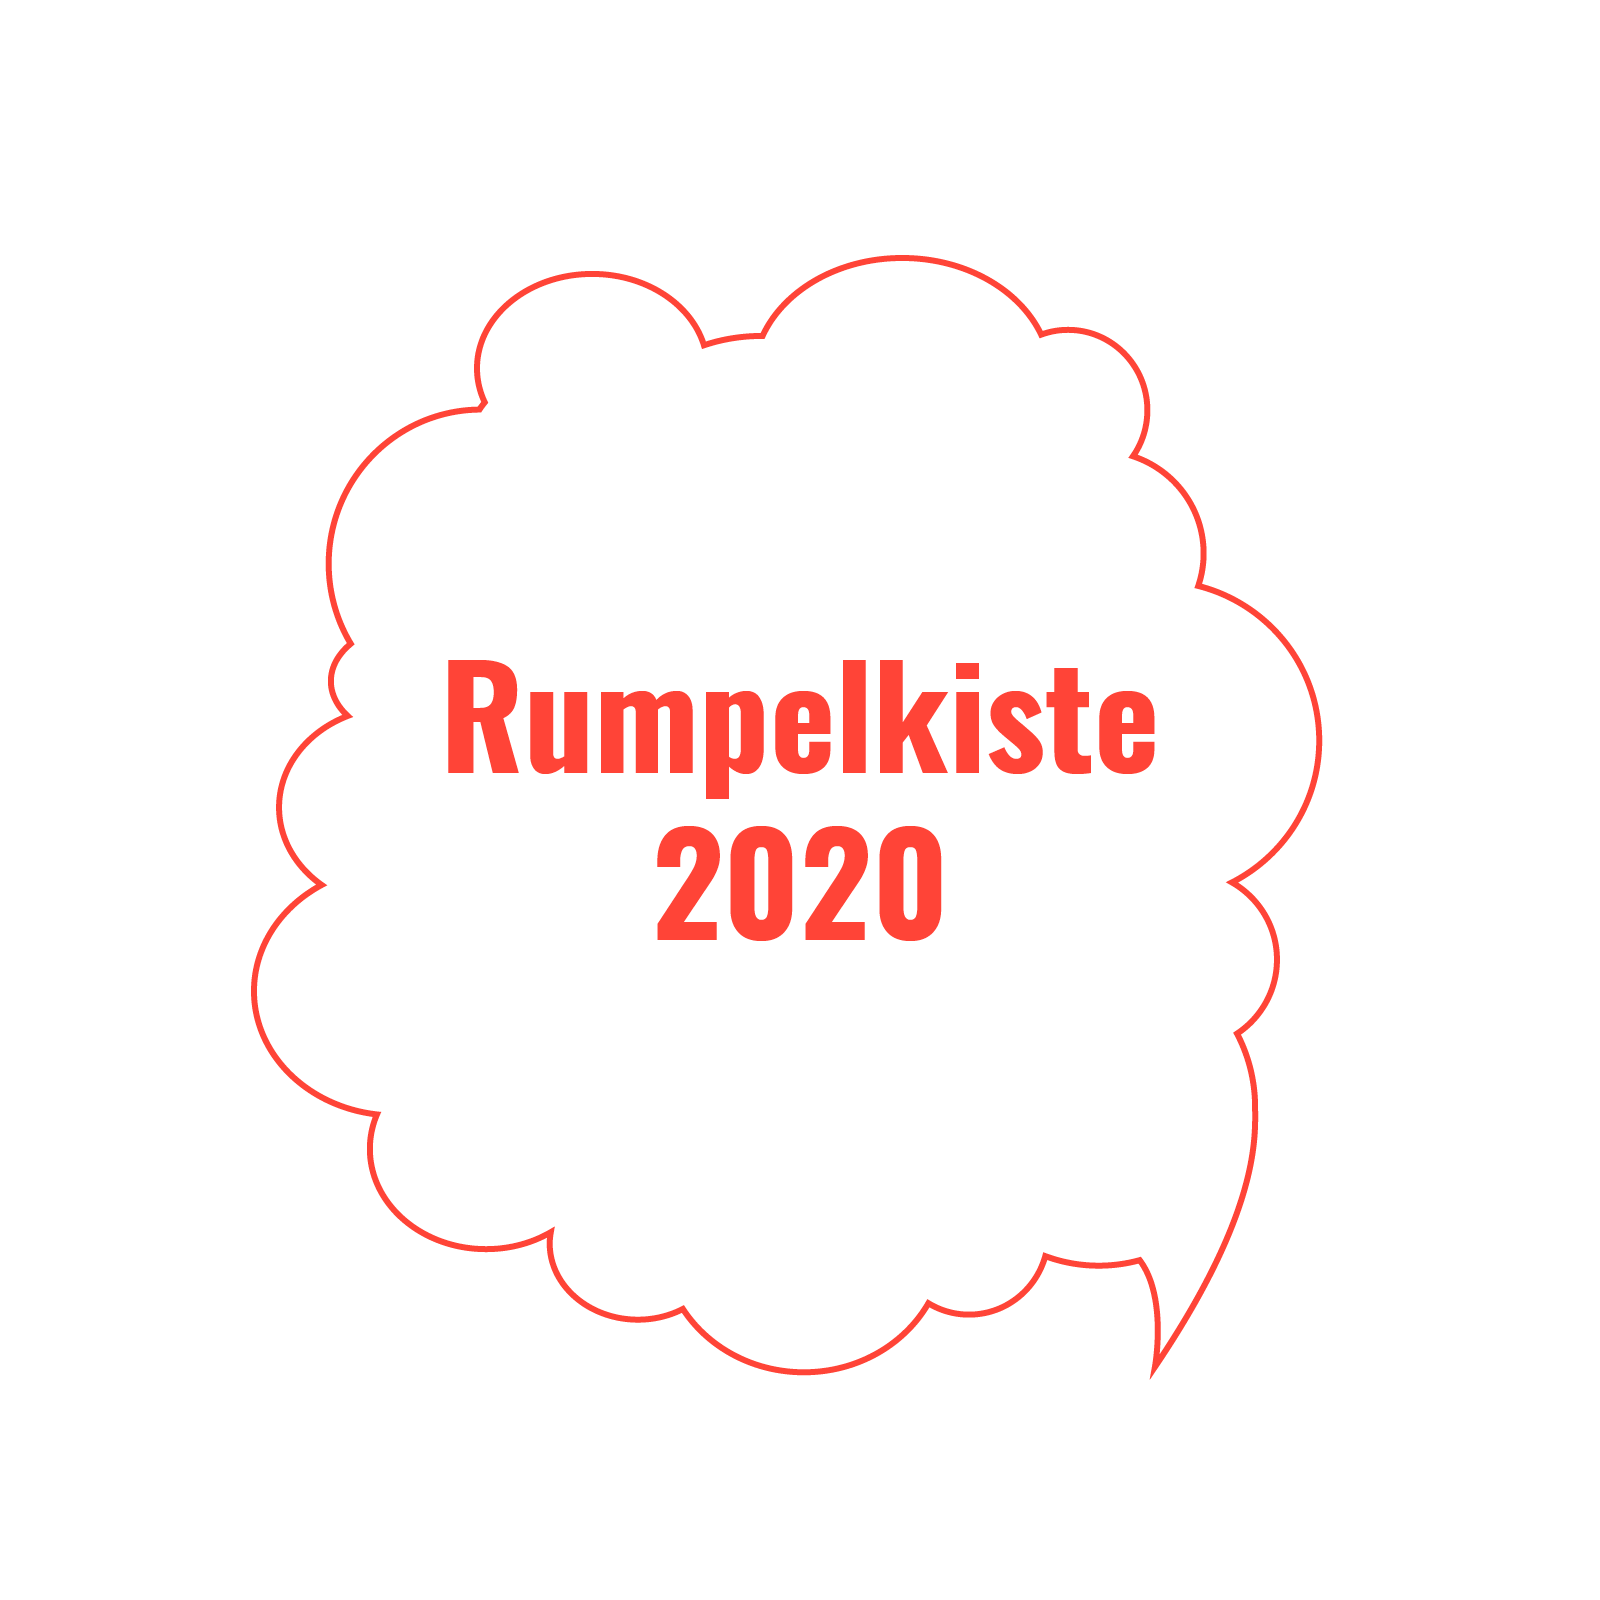 NAND Album rumpelkiste Indie Musik Synth Musik Baby